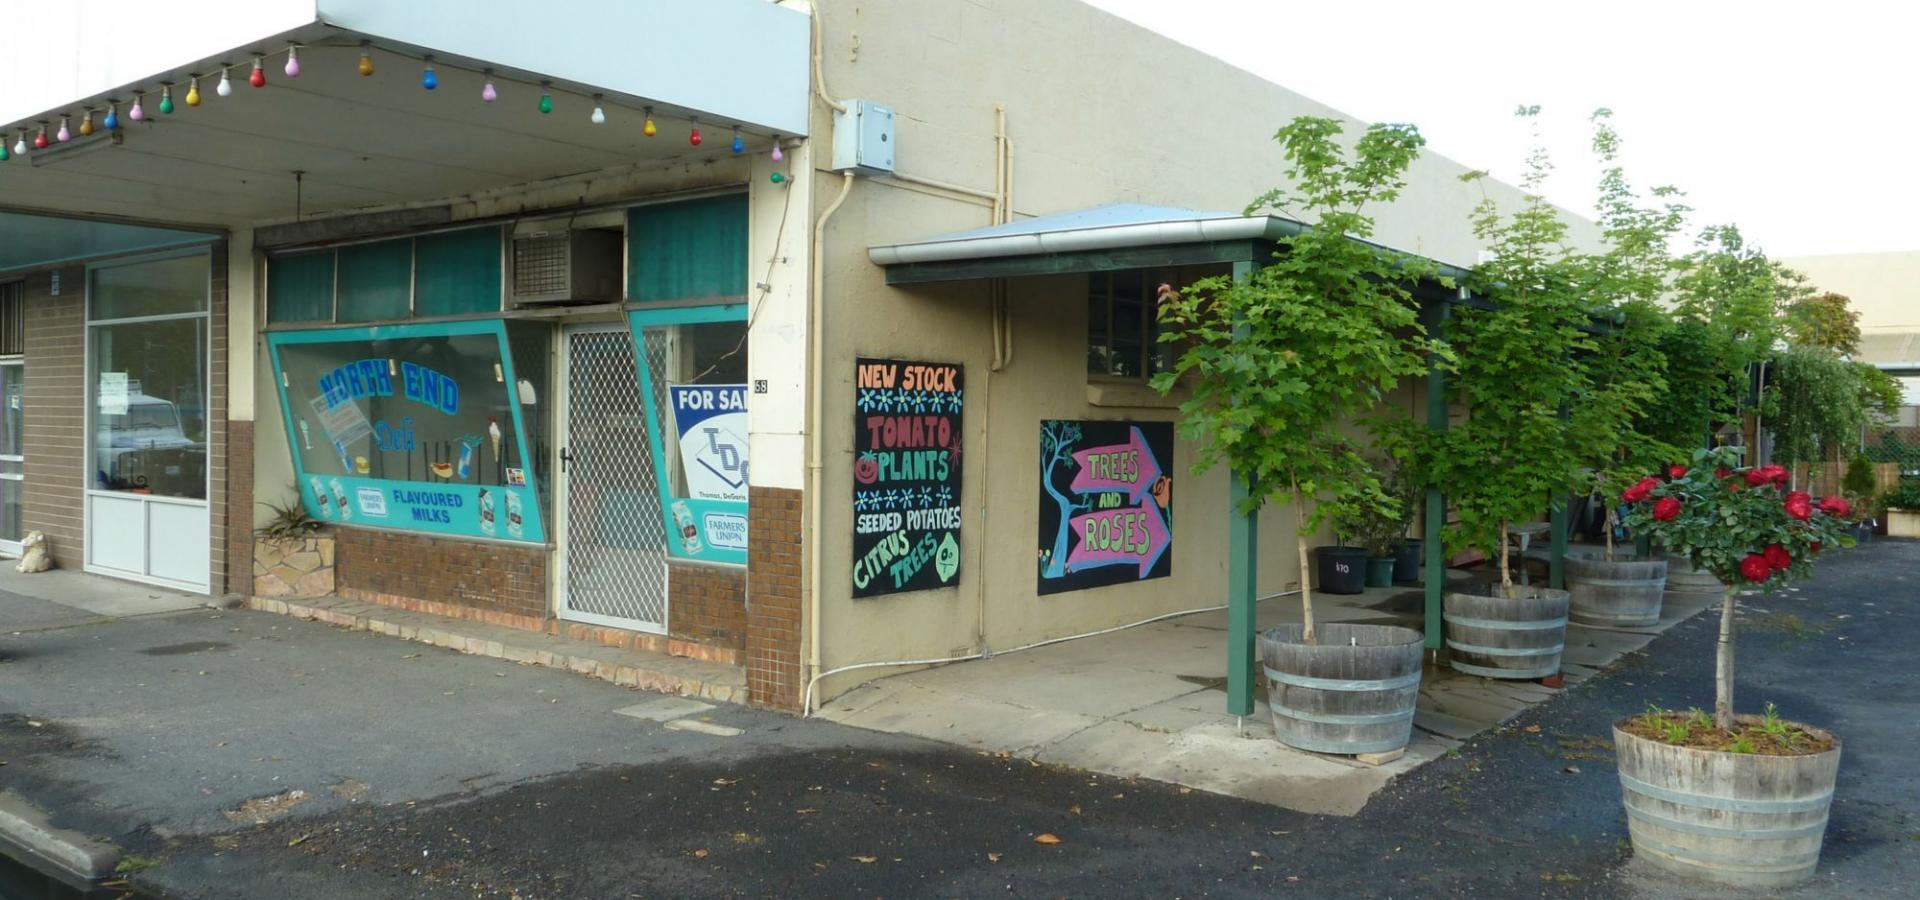 MAIN STREET - INVESTMENT OPPORTUNITY